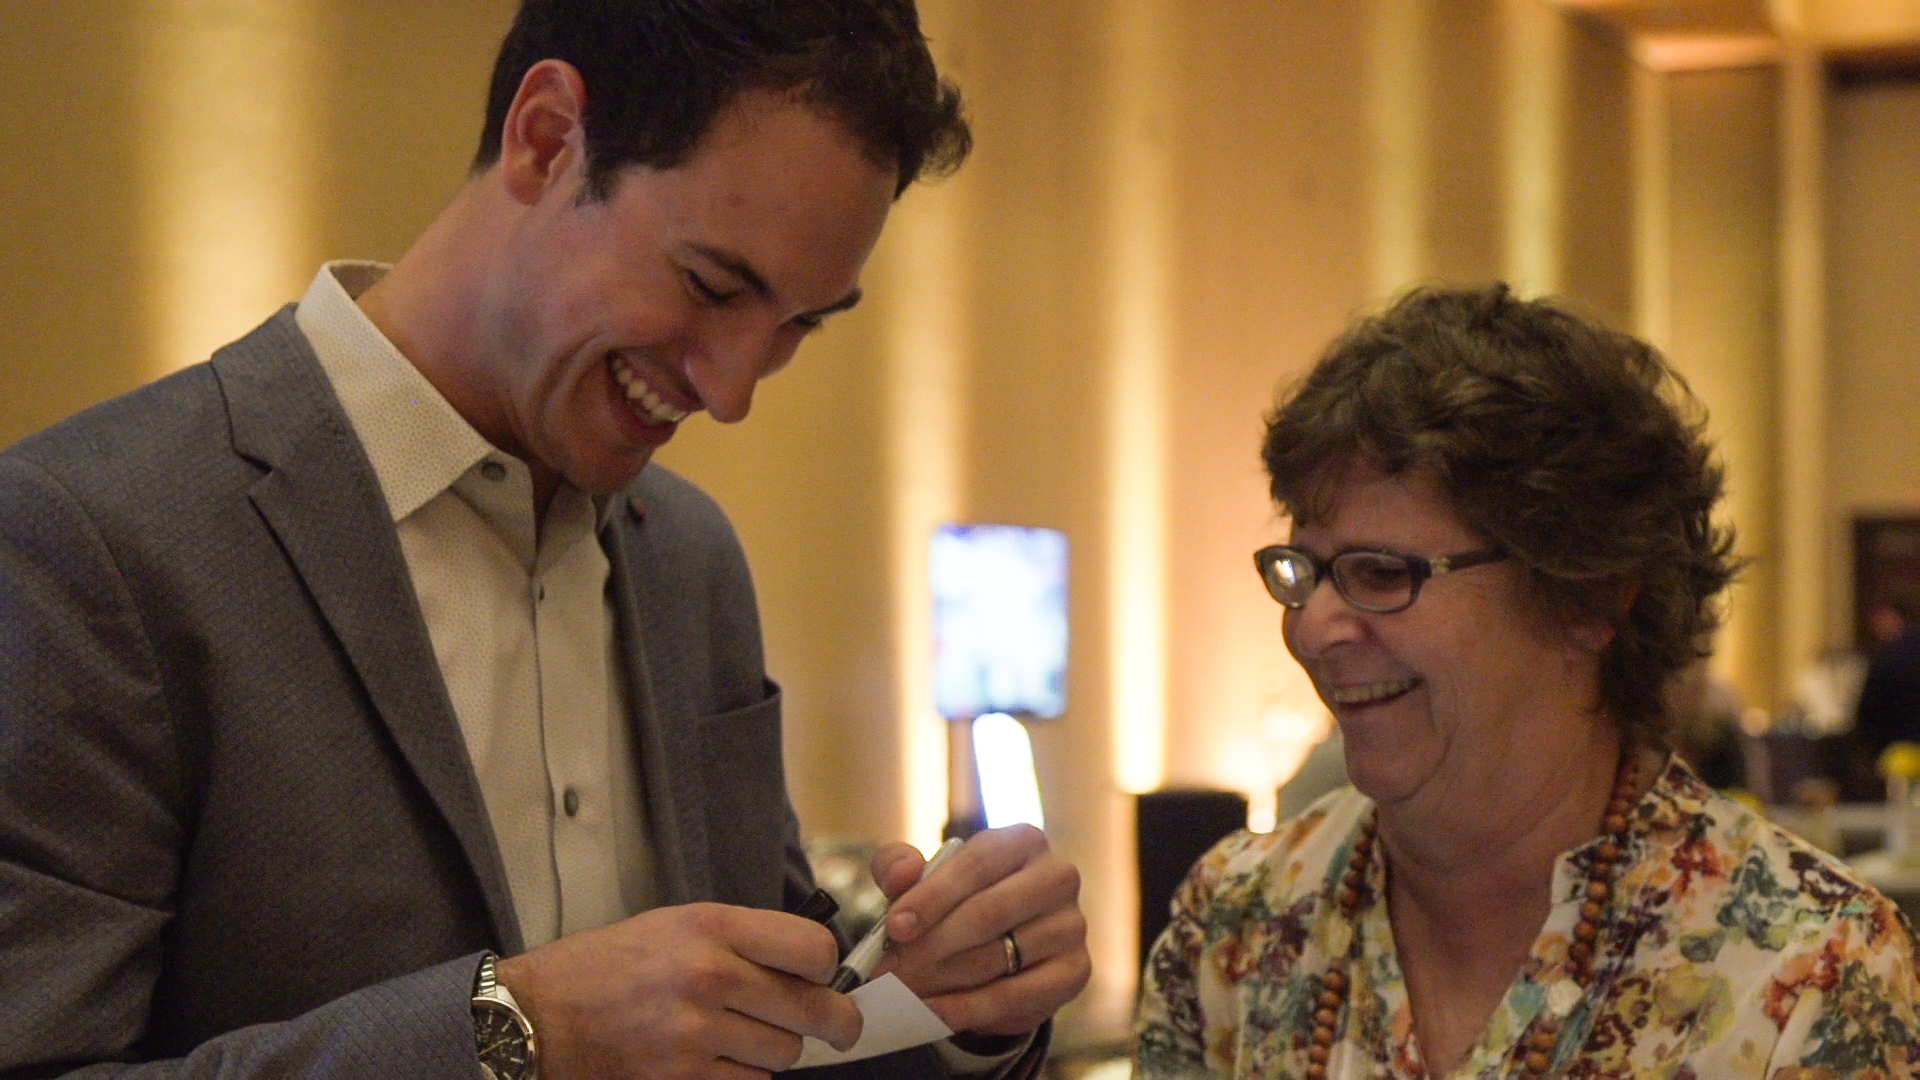 Joey Logano signs a photo for a customer at dinner Saturday night.